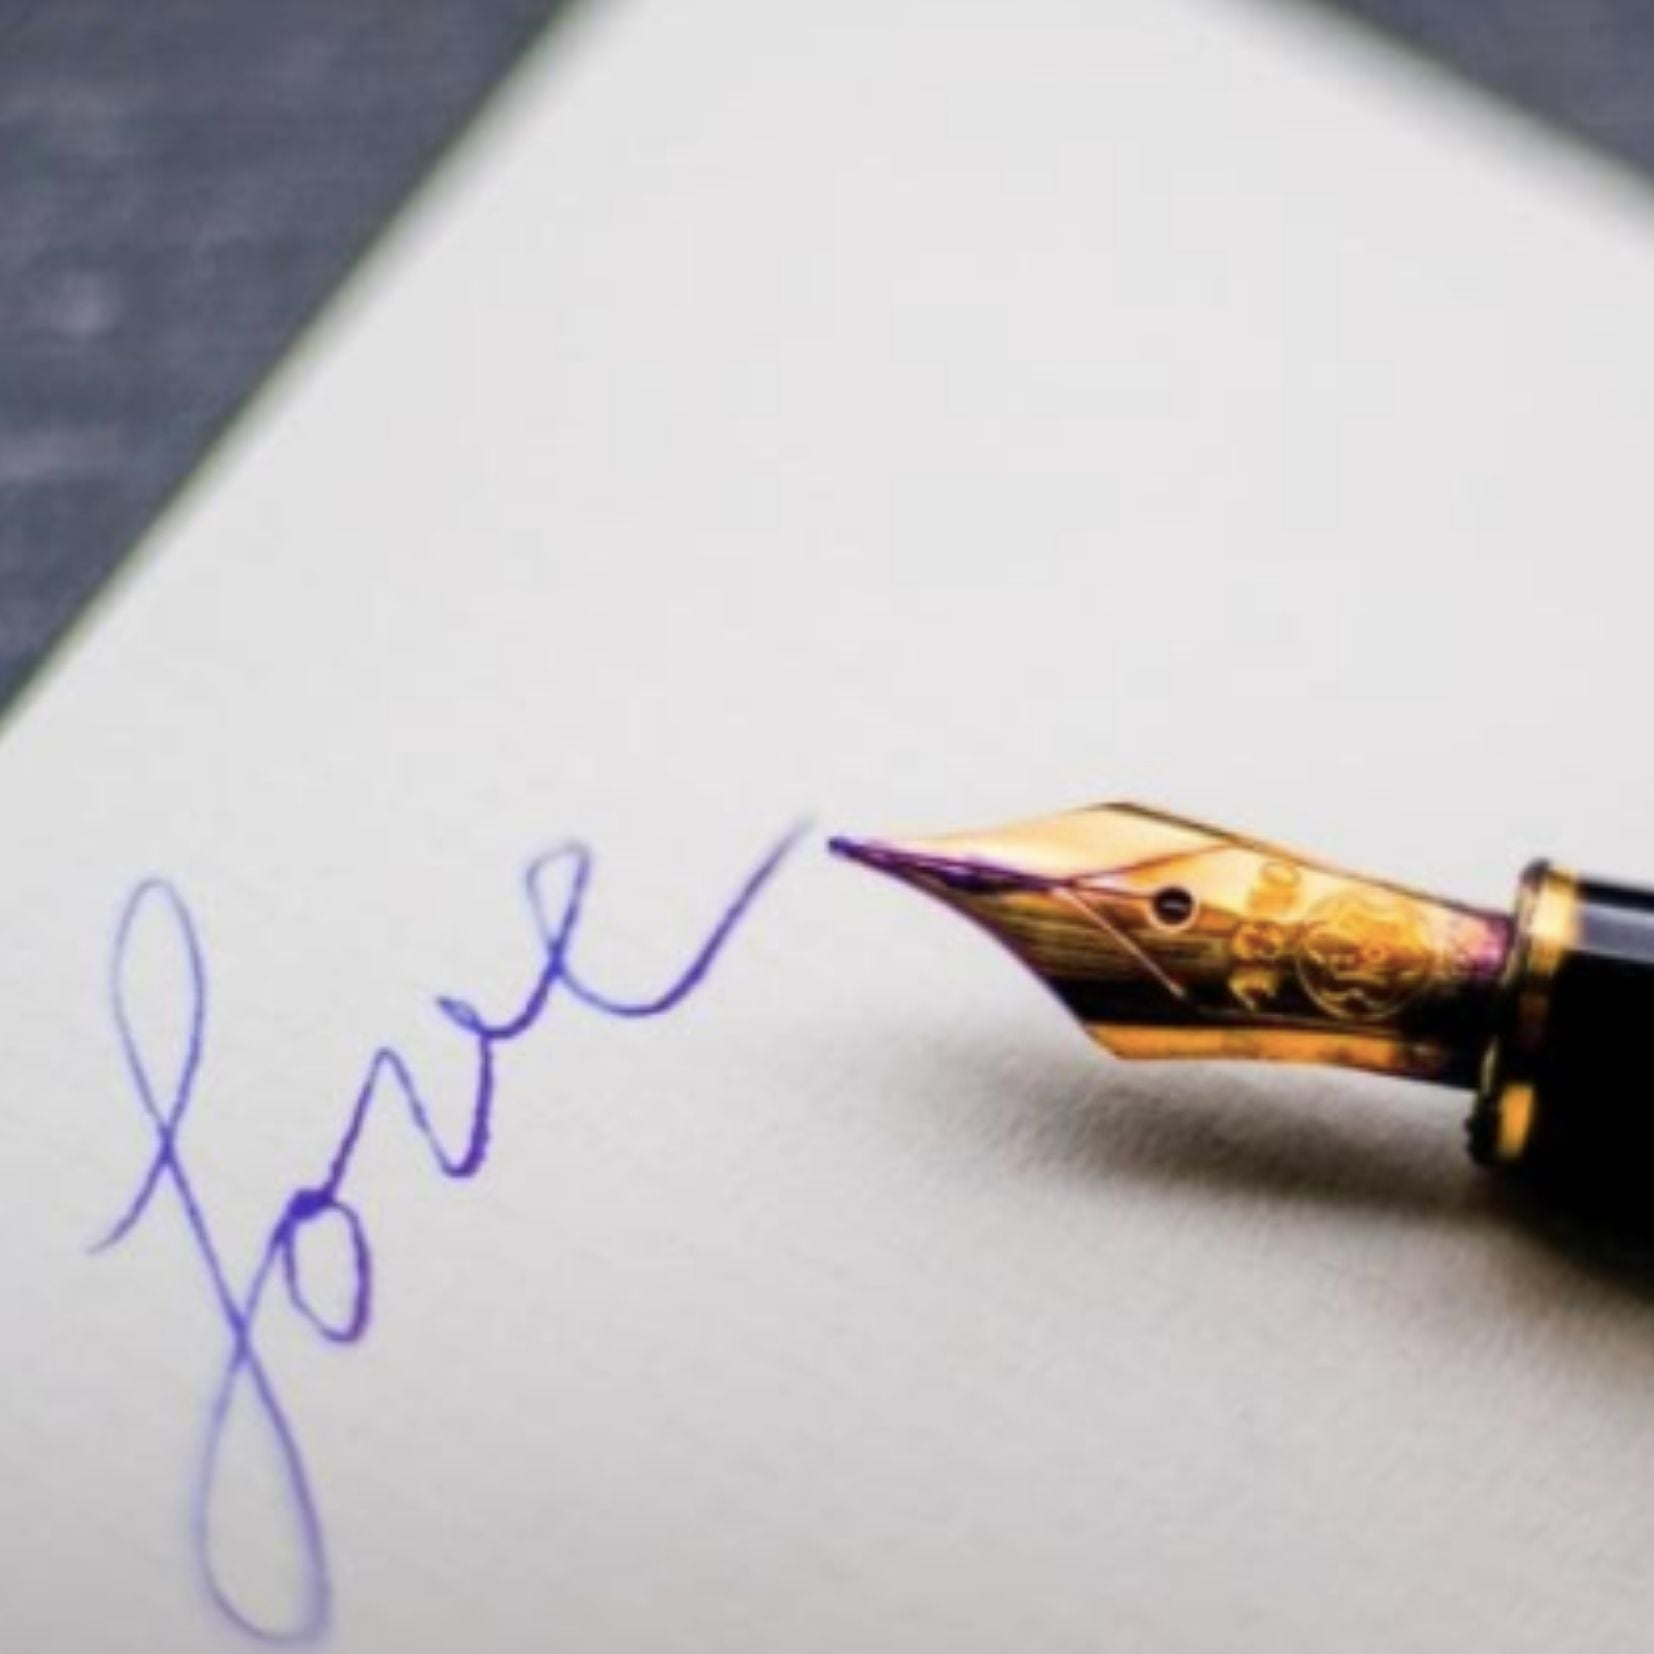 How to Write a Love Letter - 6 Tips for Men